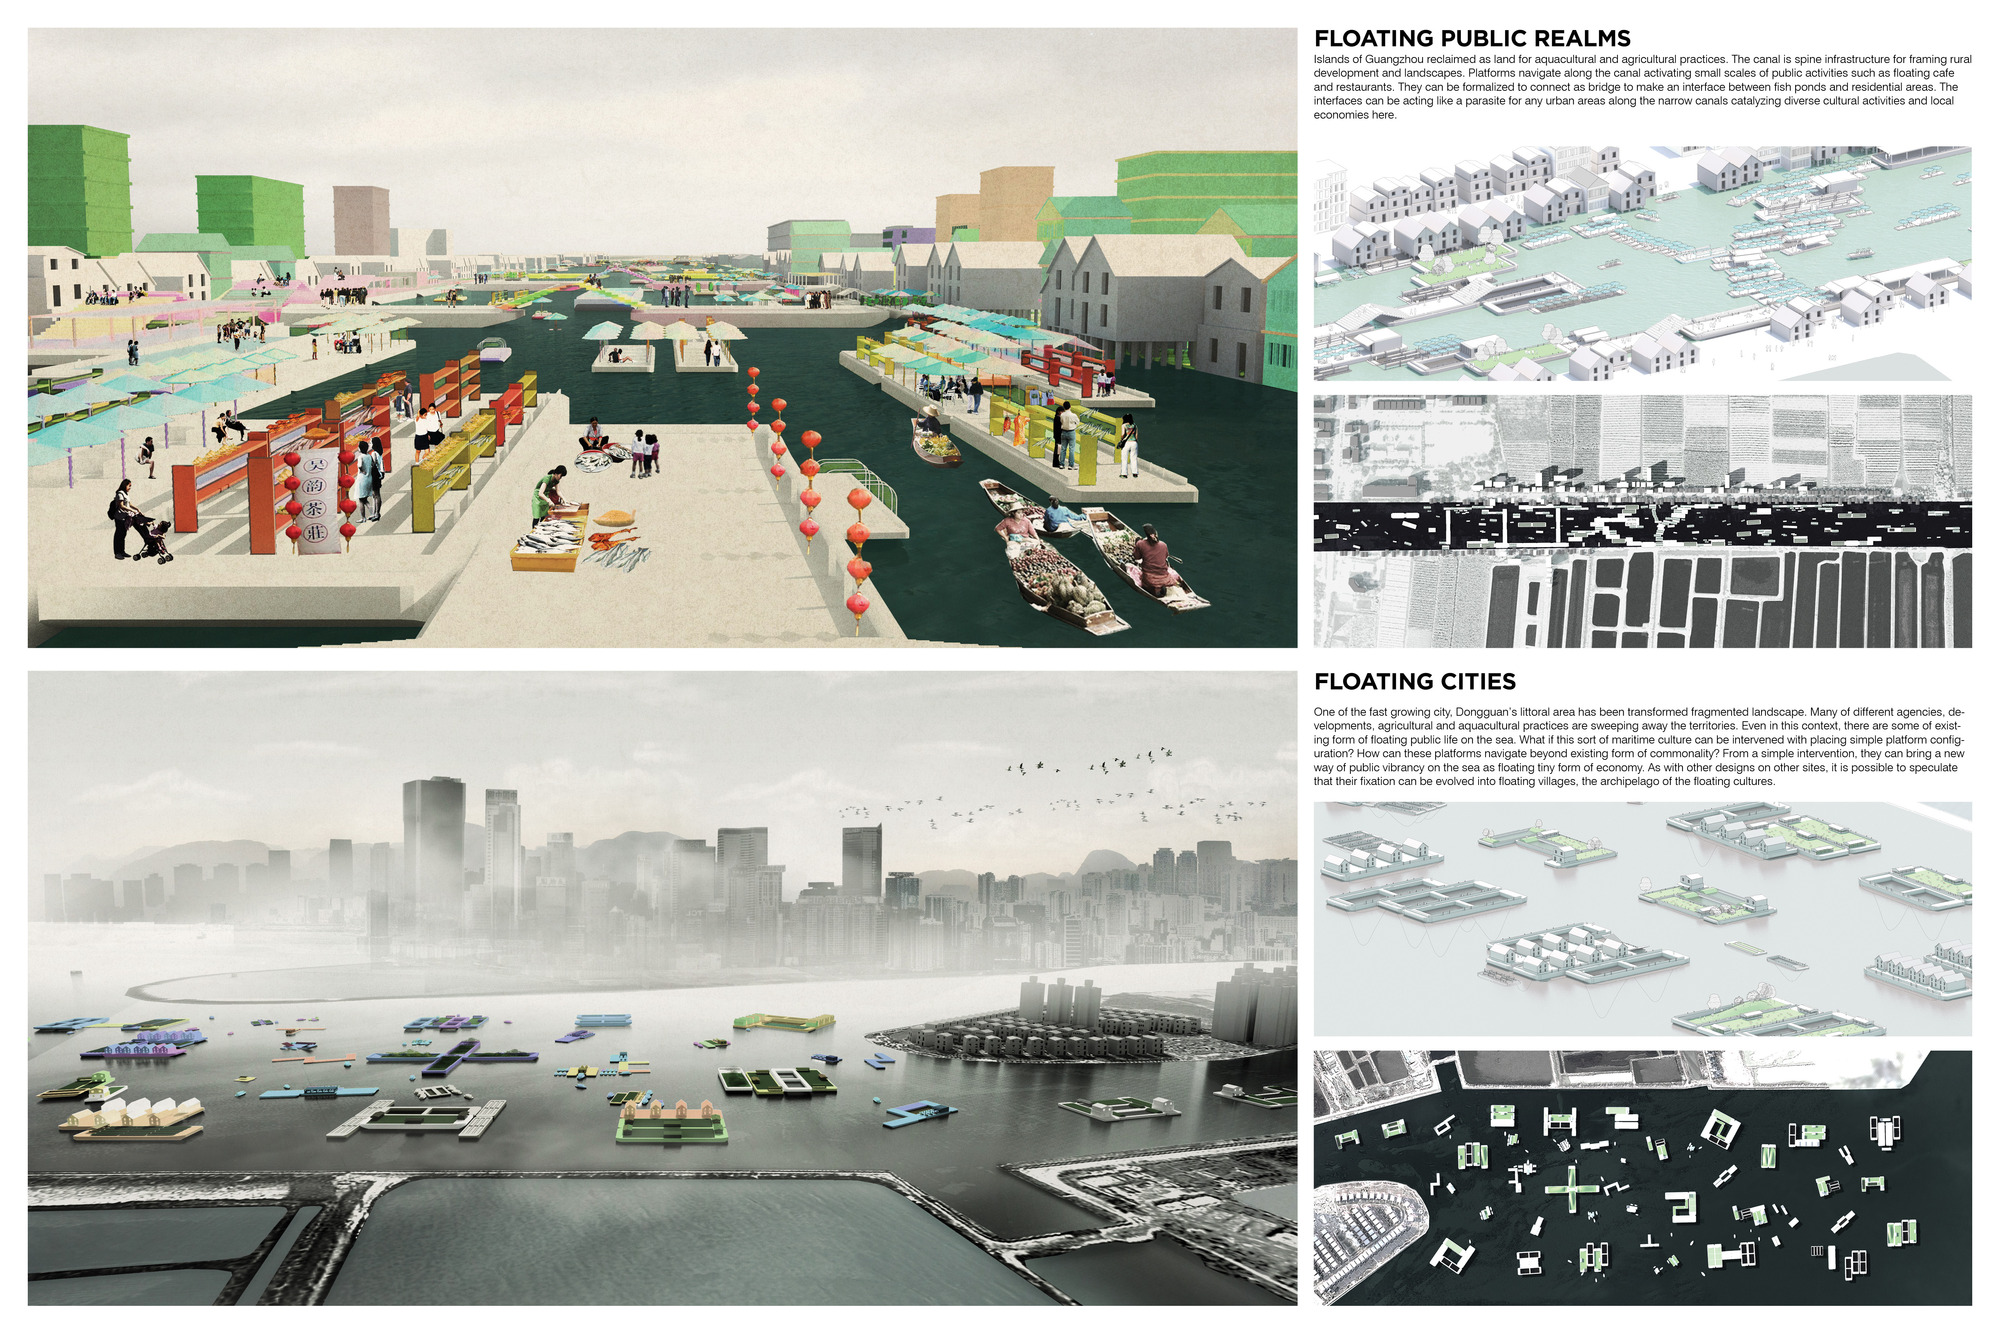 SCoopA Announces Winners Of 2015 Milan Expo Competition